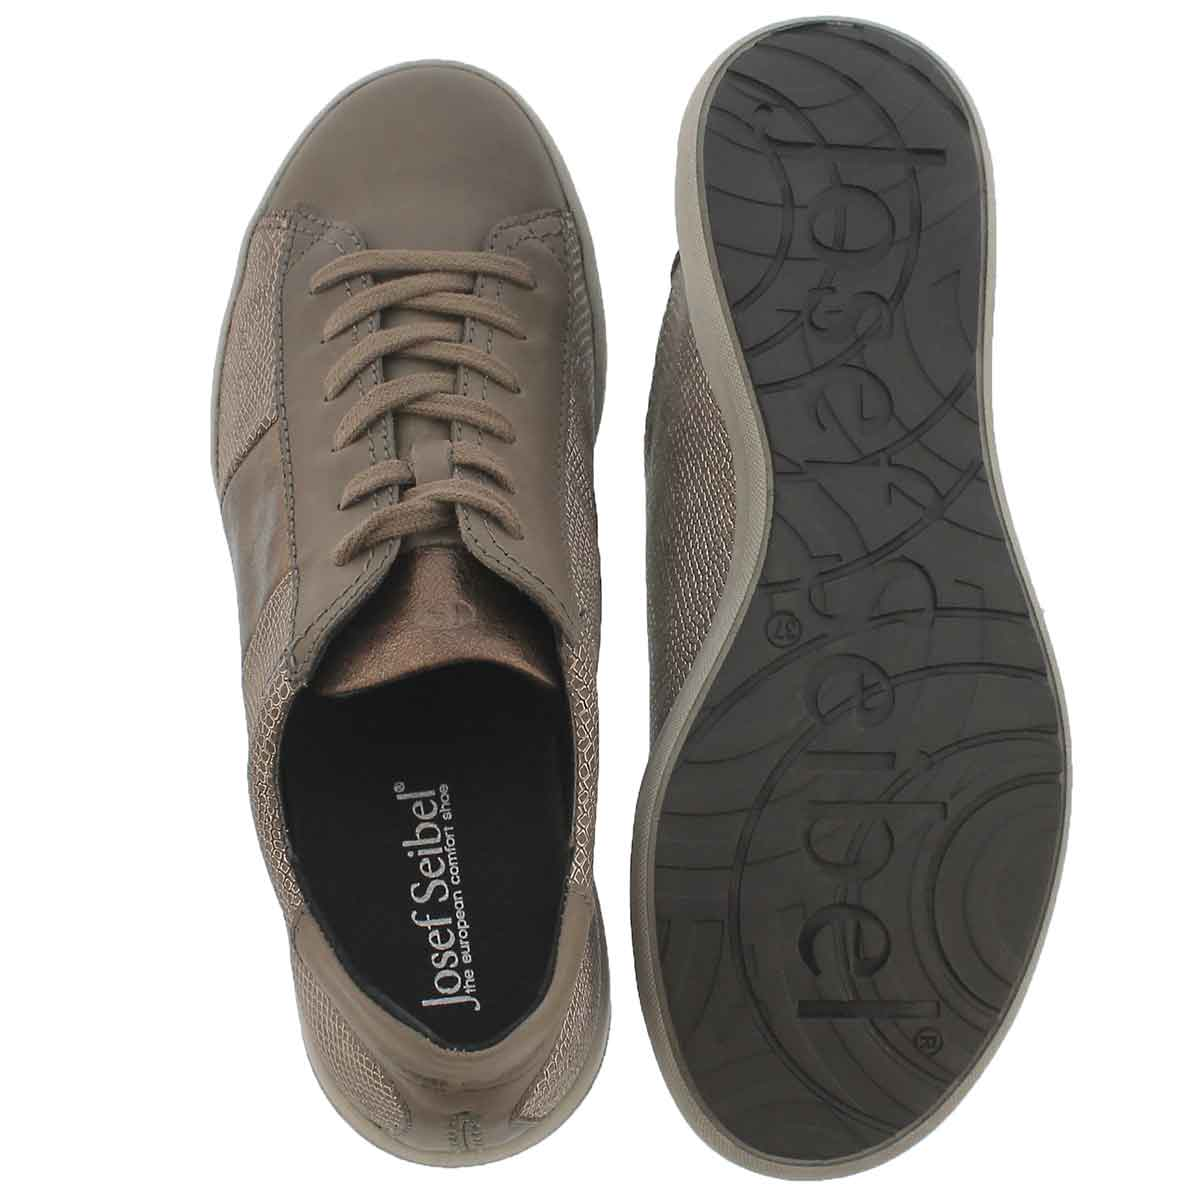 Lds Sina 27 asphalt lace up casual snkr